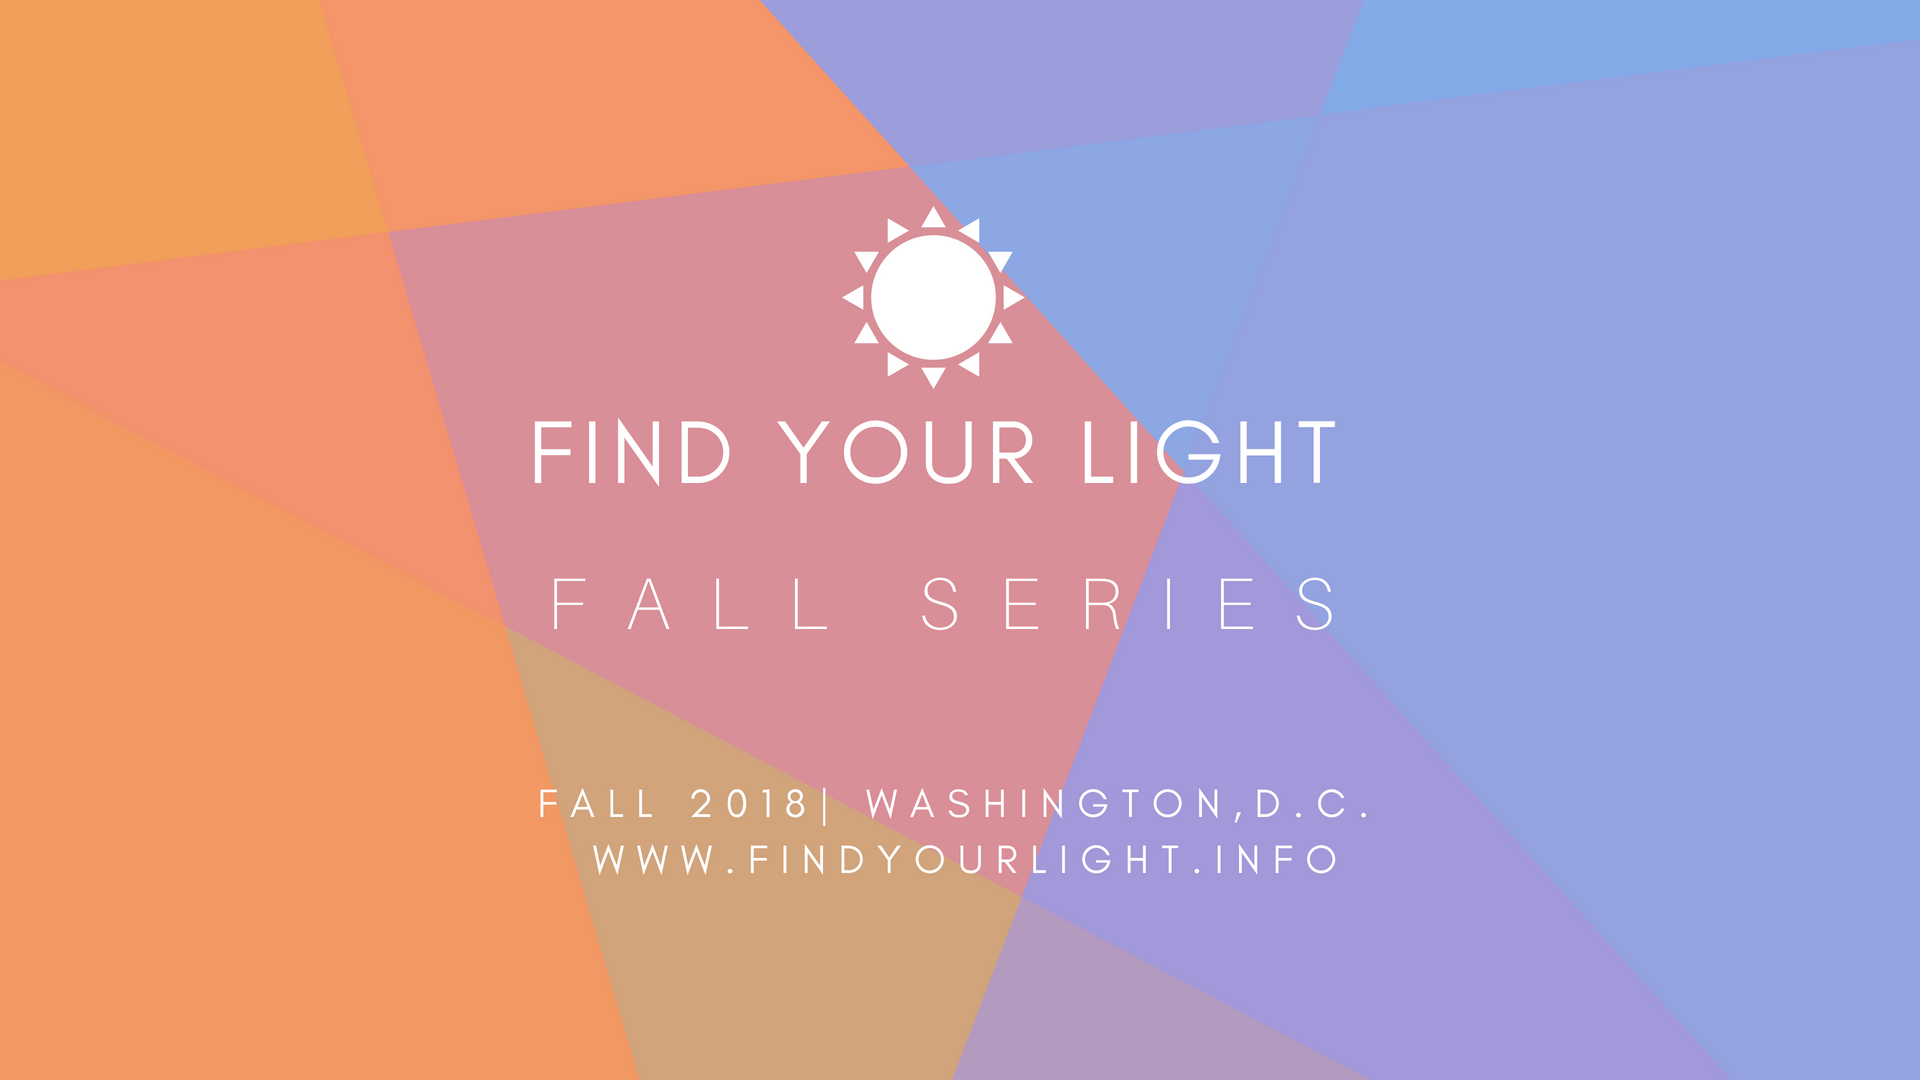 Copy of Copy of FIND YOUR LIGHT (3).png